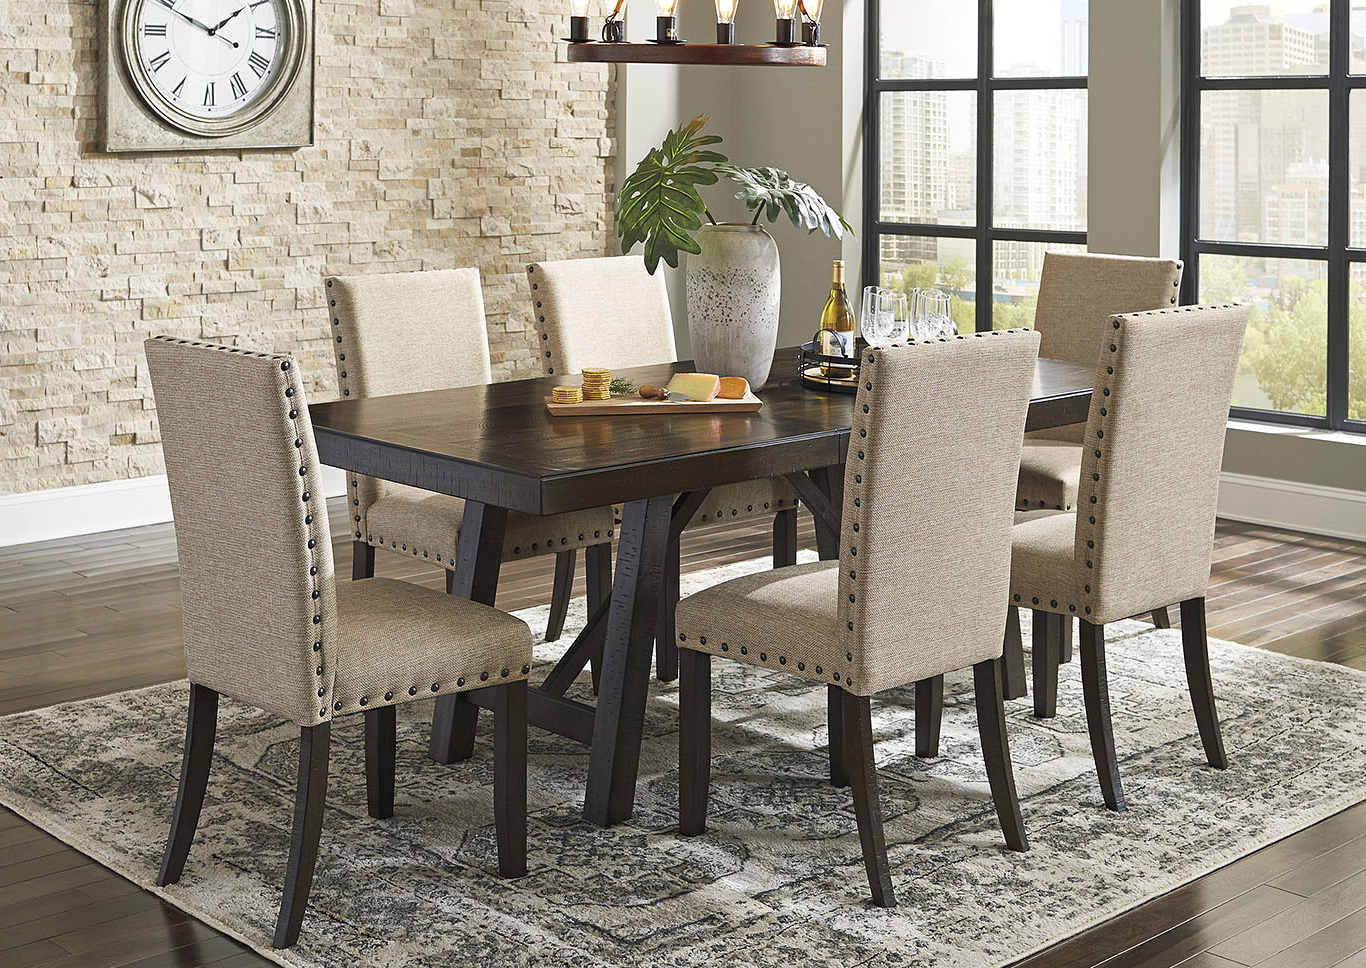 2020 Transitional 6-Seating Casual Dining Tables intended for Bargain Furniture & Appliances - Mi Rokane Light Brown